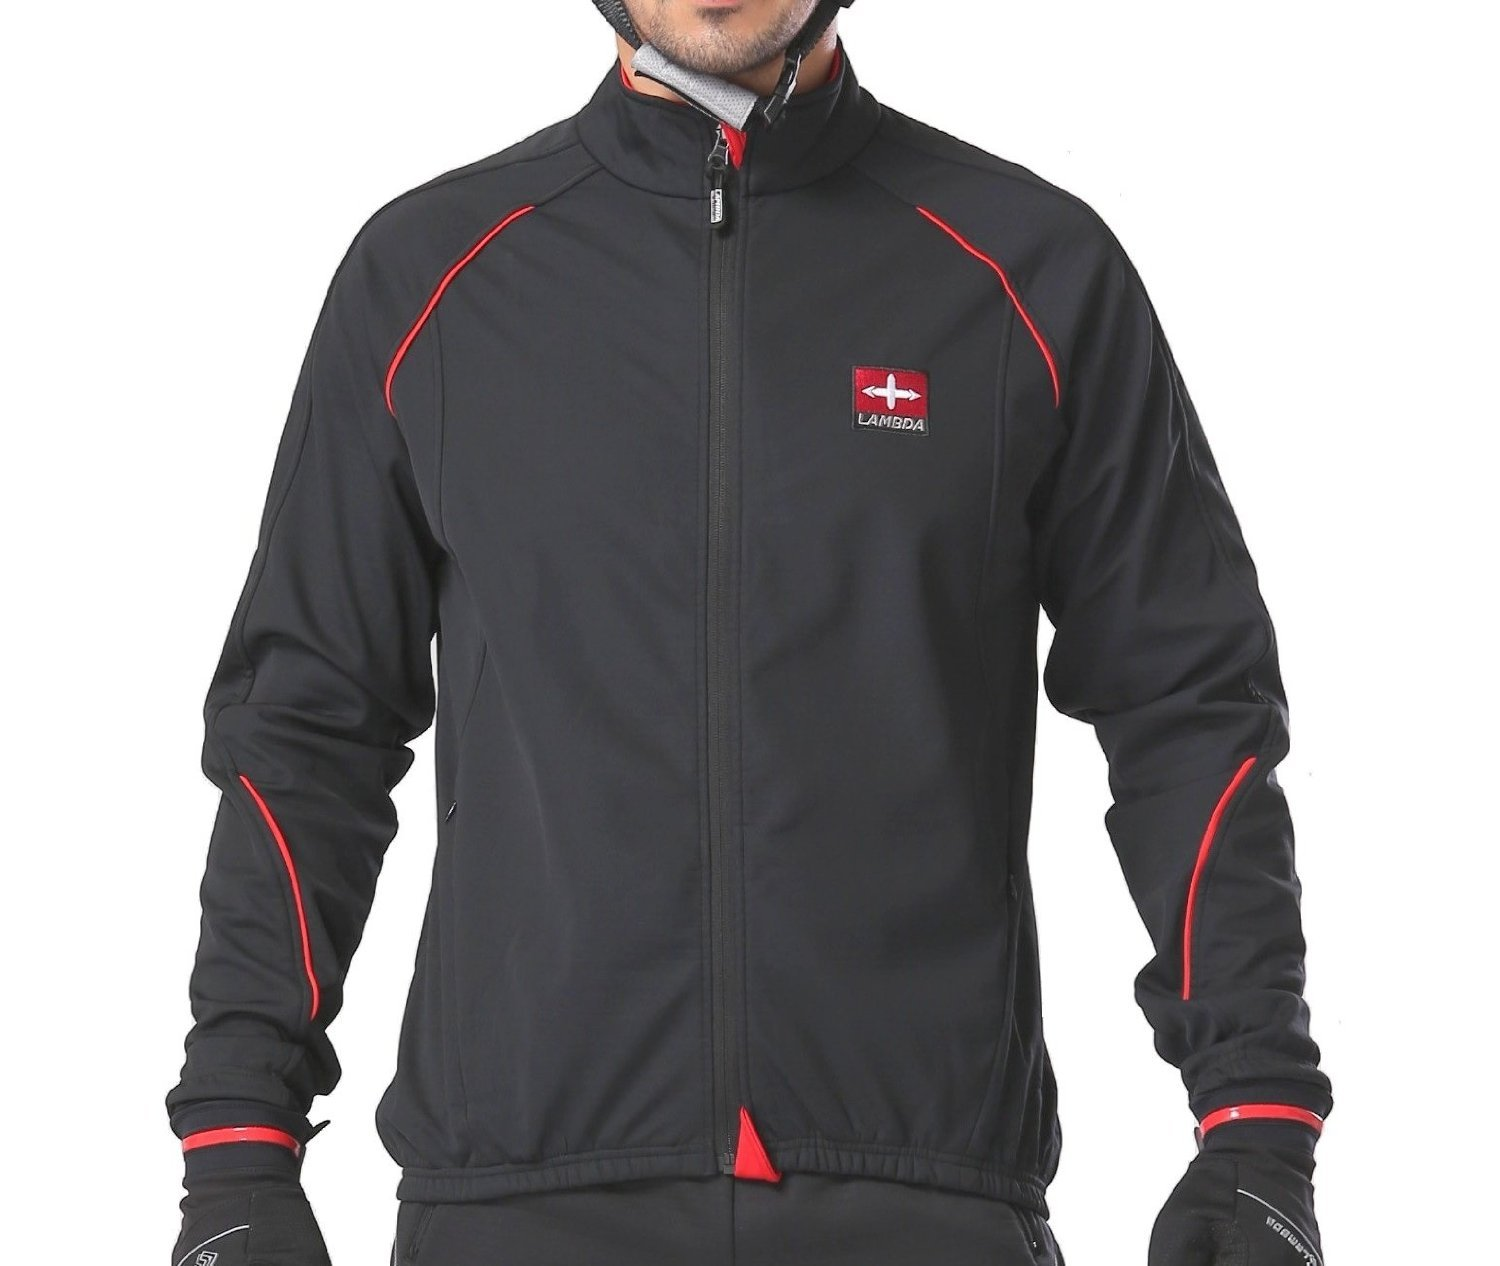 4ucycling Windproof Full Zip Wind Jacket with 3-layers Composite Stretchy Fabric